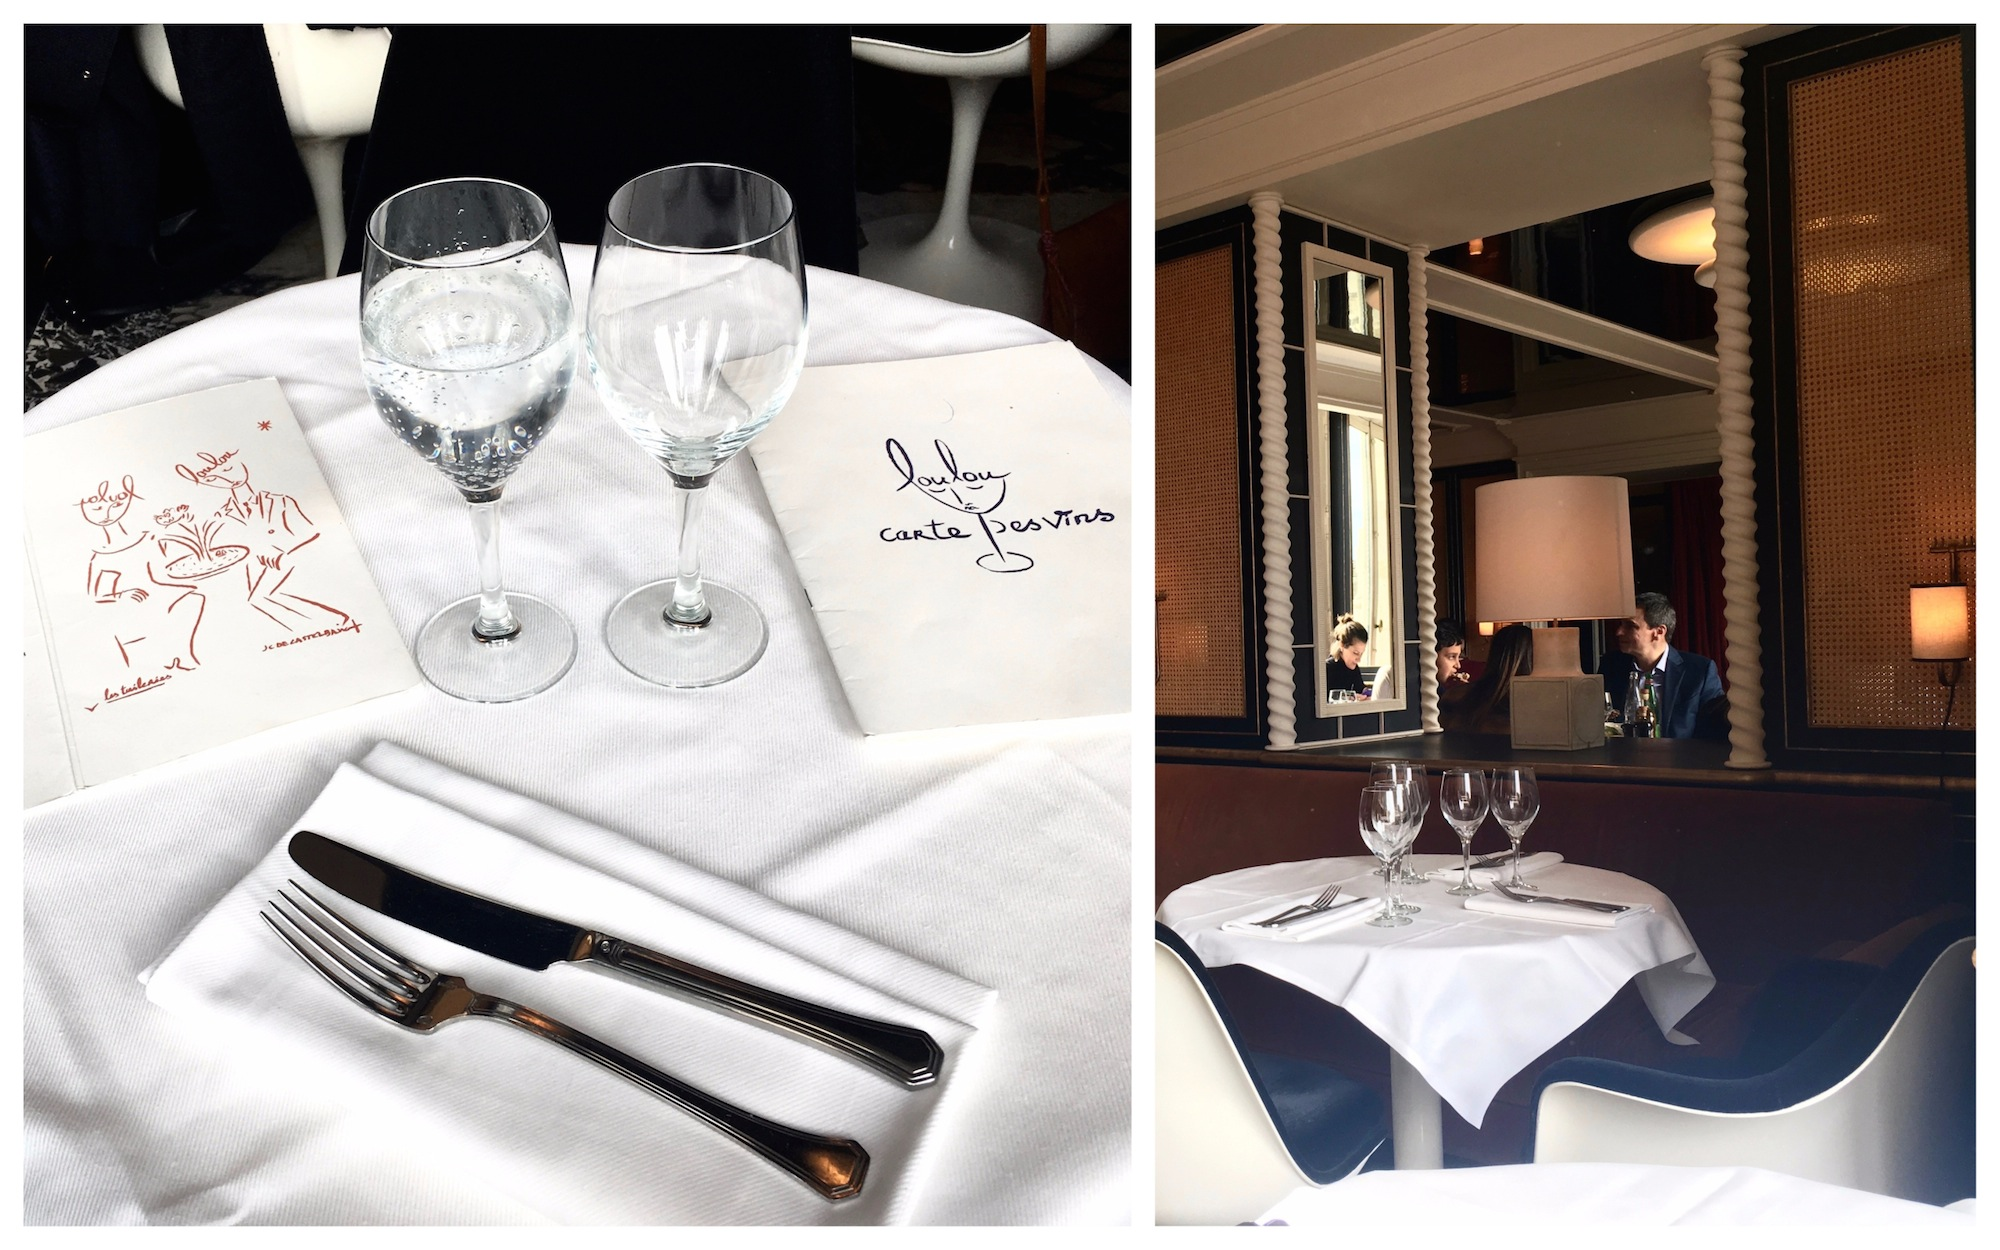 The menus on a table with a white tablecloth and glasses of sparkling water (left) and a corner table (right) at Loulou restaurant in Paris.